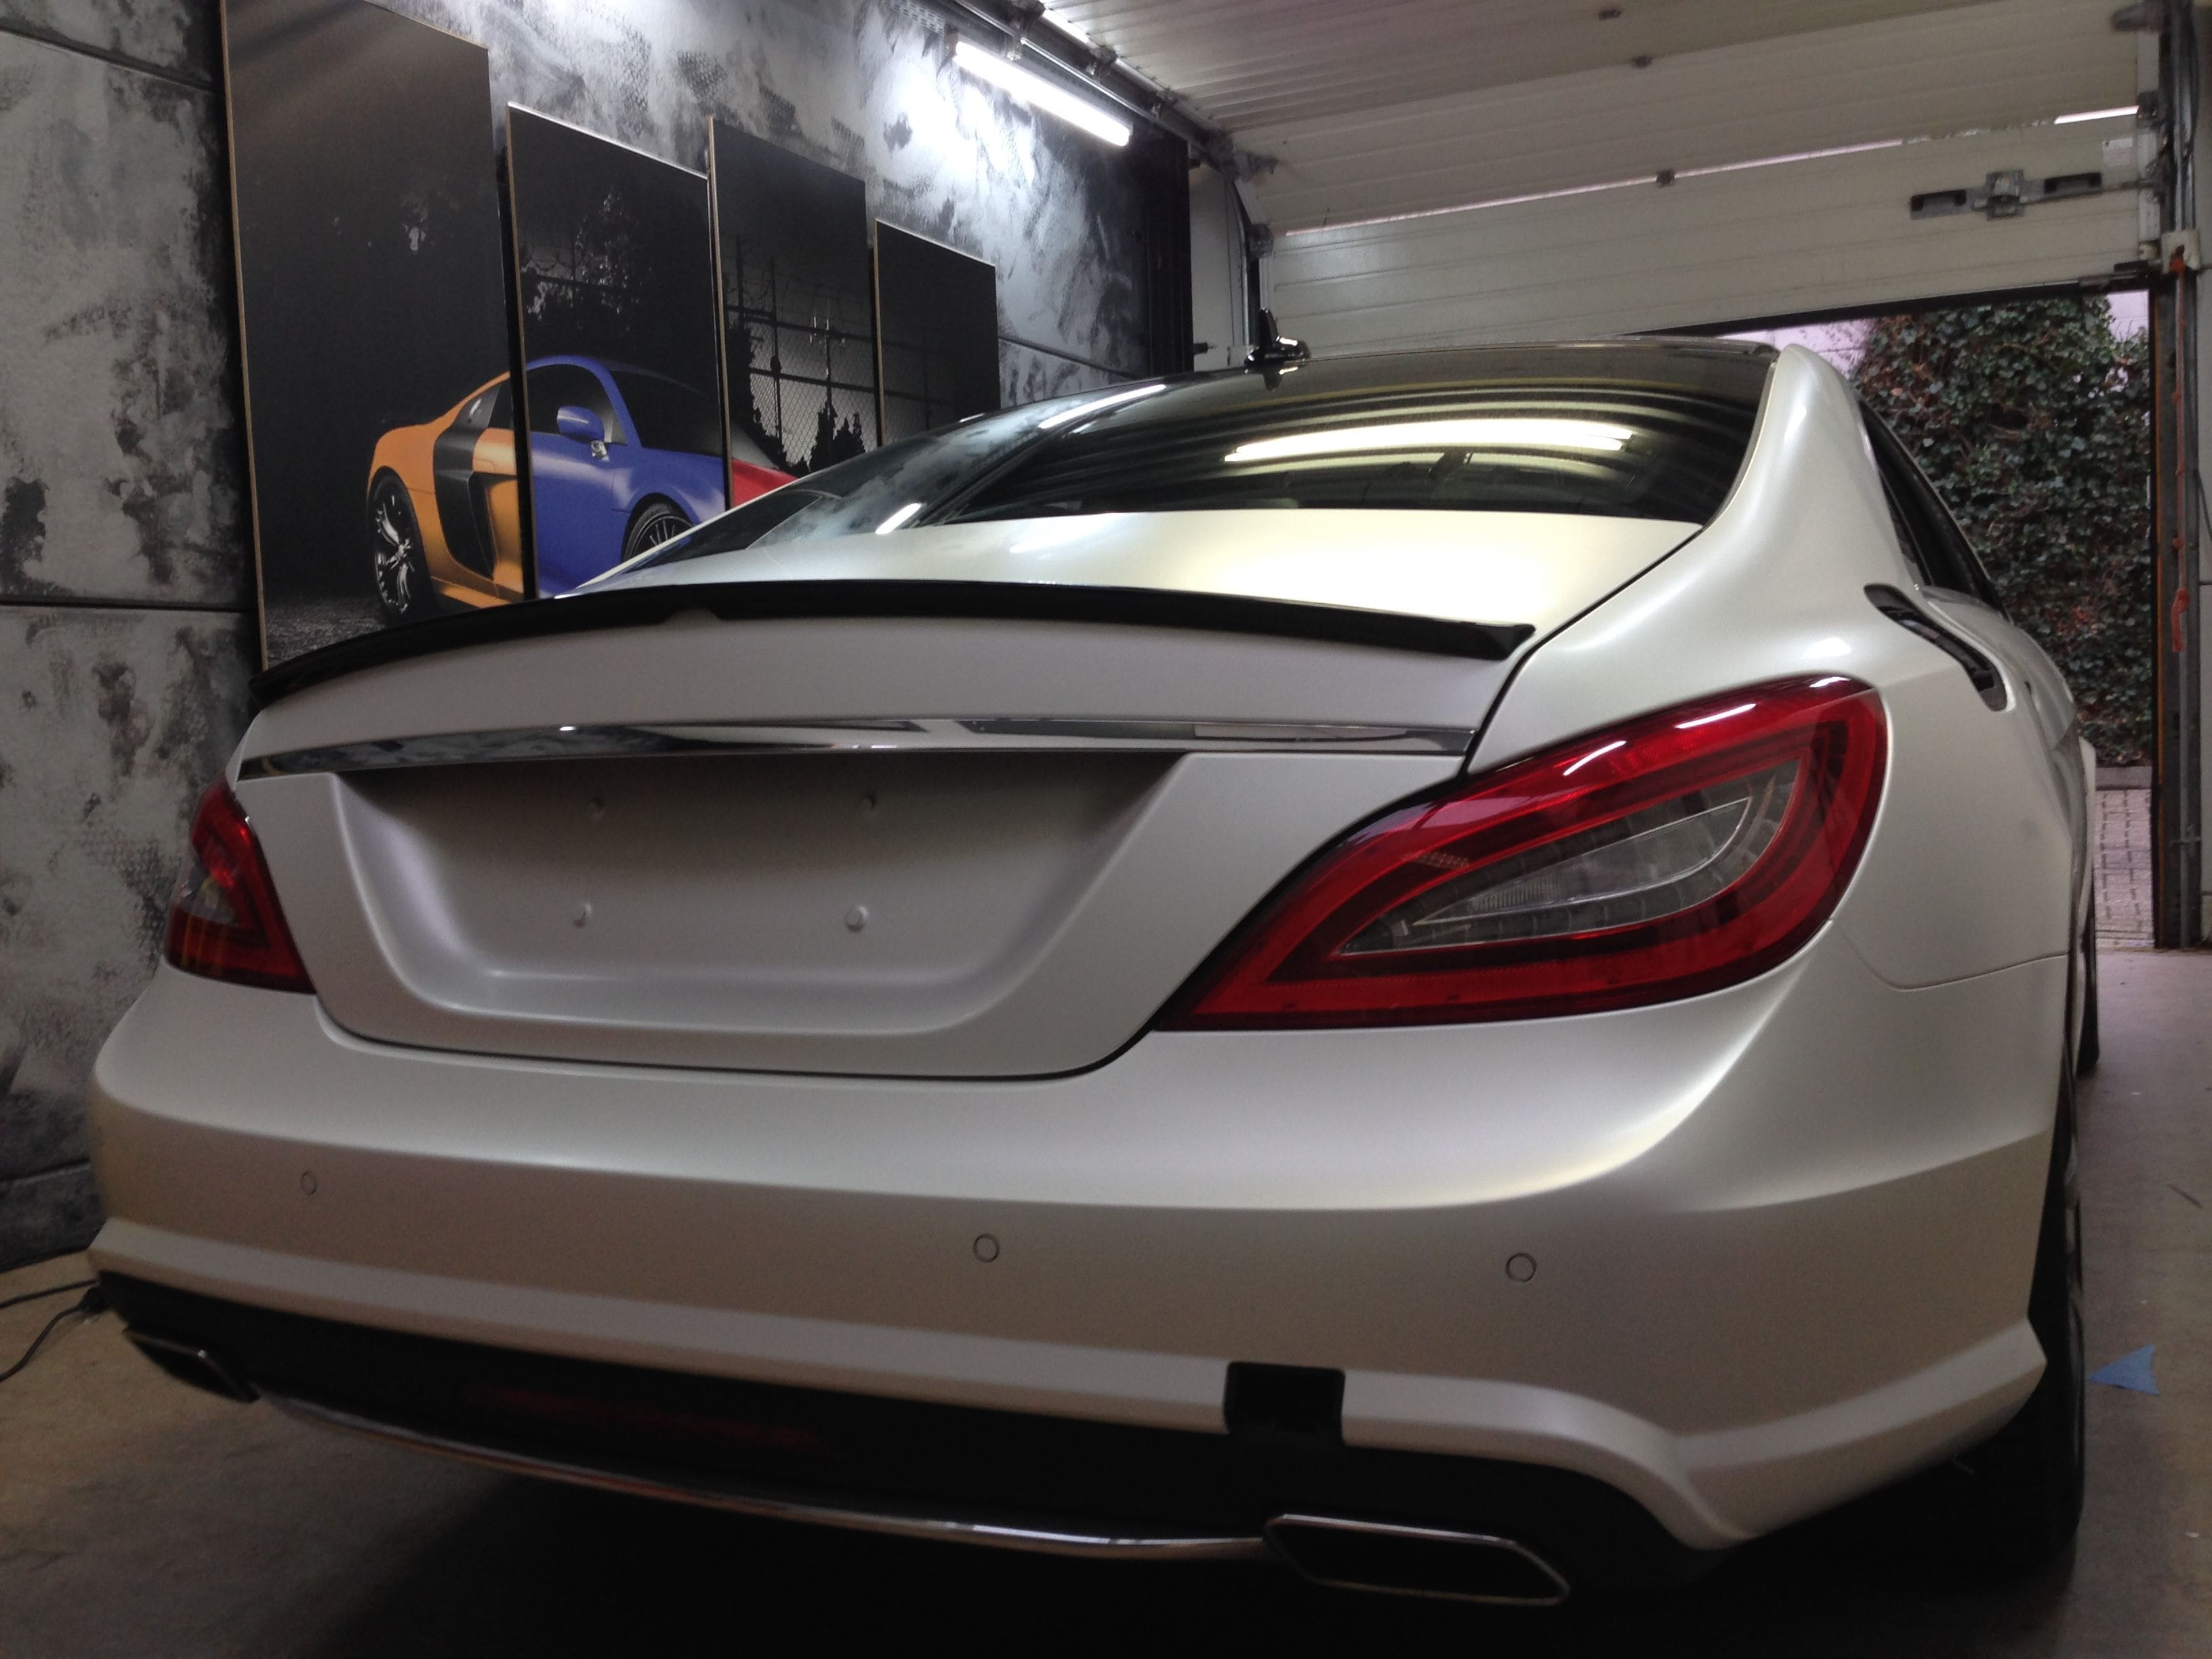 Mercedes CLS met White Satin Pearl Wrap, Carwrapping door Wrapmyride.nu Foto-nr:6185, ©2020